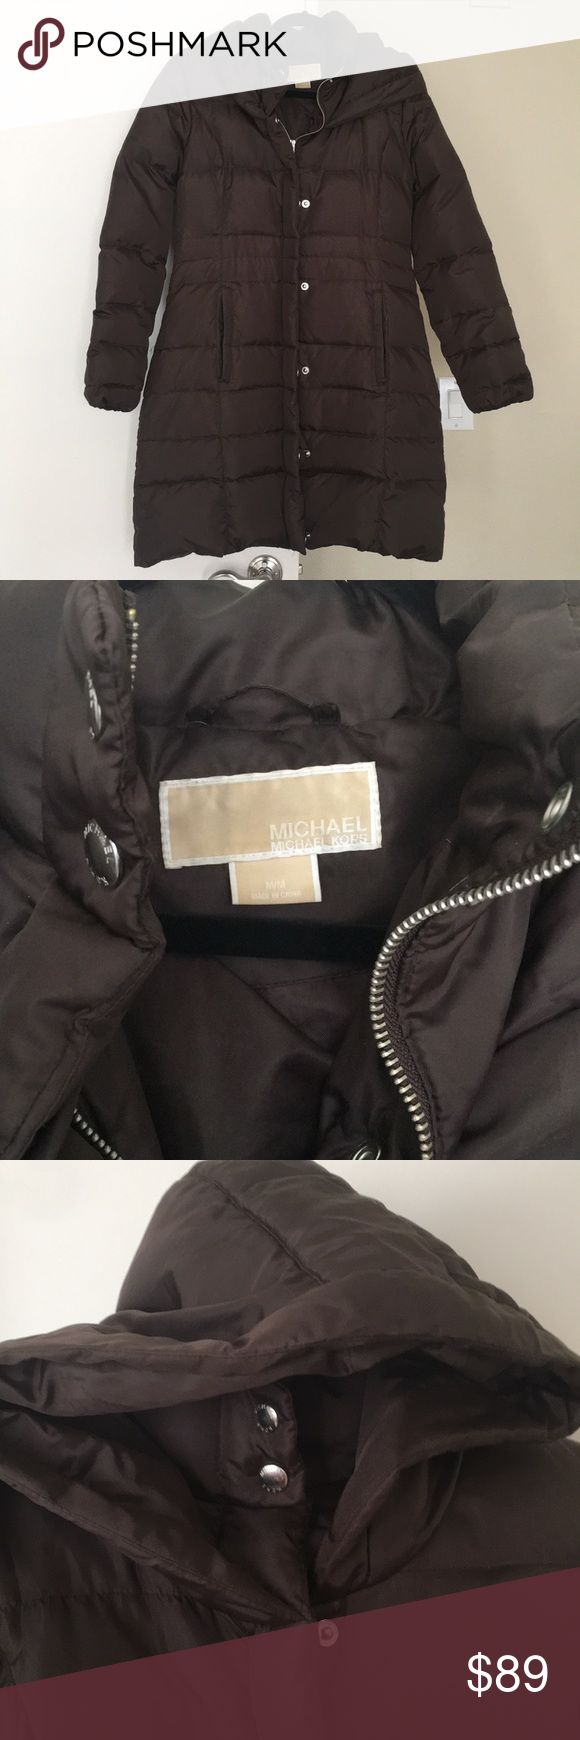 "Michael Kors Long Brown Hooded Puffer Coat Michael Kors long brown puffy quilted coat filled with 55% down. Hooded. Zip and snap closure. Two pockets. Silver hardware. Perfect cold weather jacket! Approx 2"" tear on seam of inner lining that is an easy fix (see pic) and another on the seam of inside of one pocket, but I can't sew! Size M. Michael Kors Jackets & Coats Puffers"